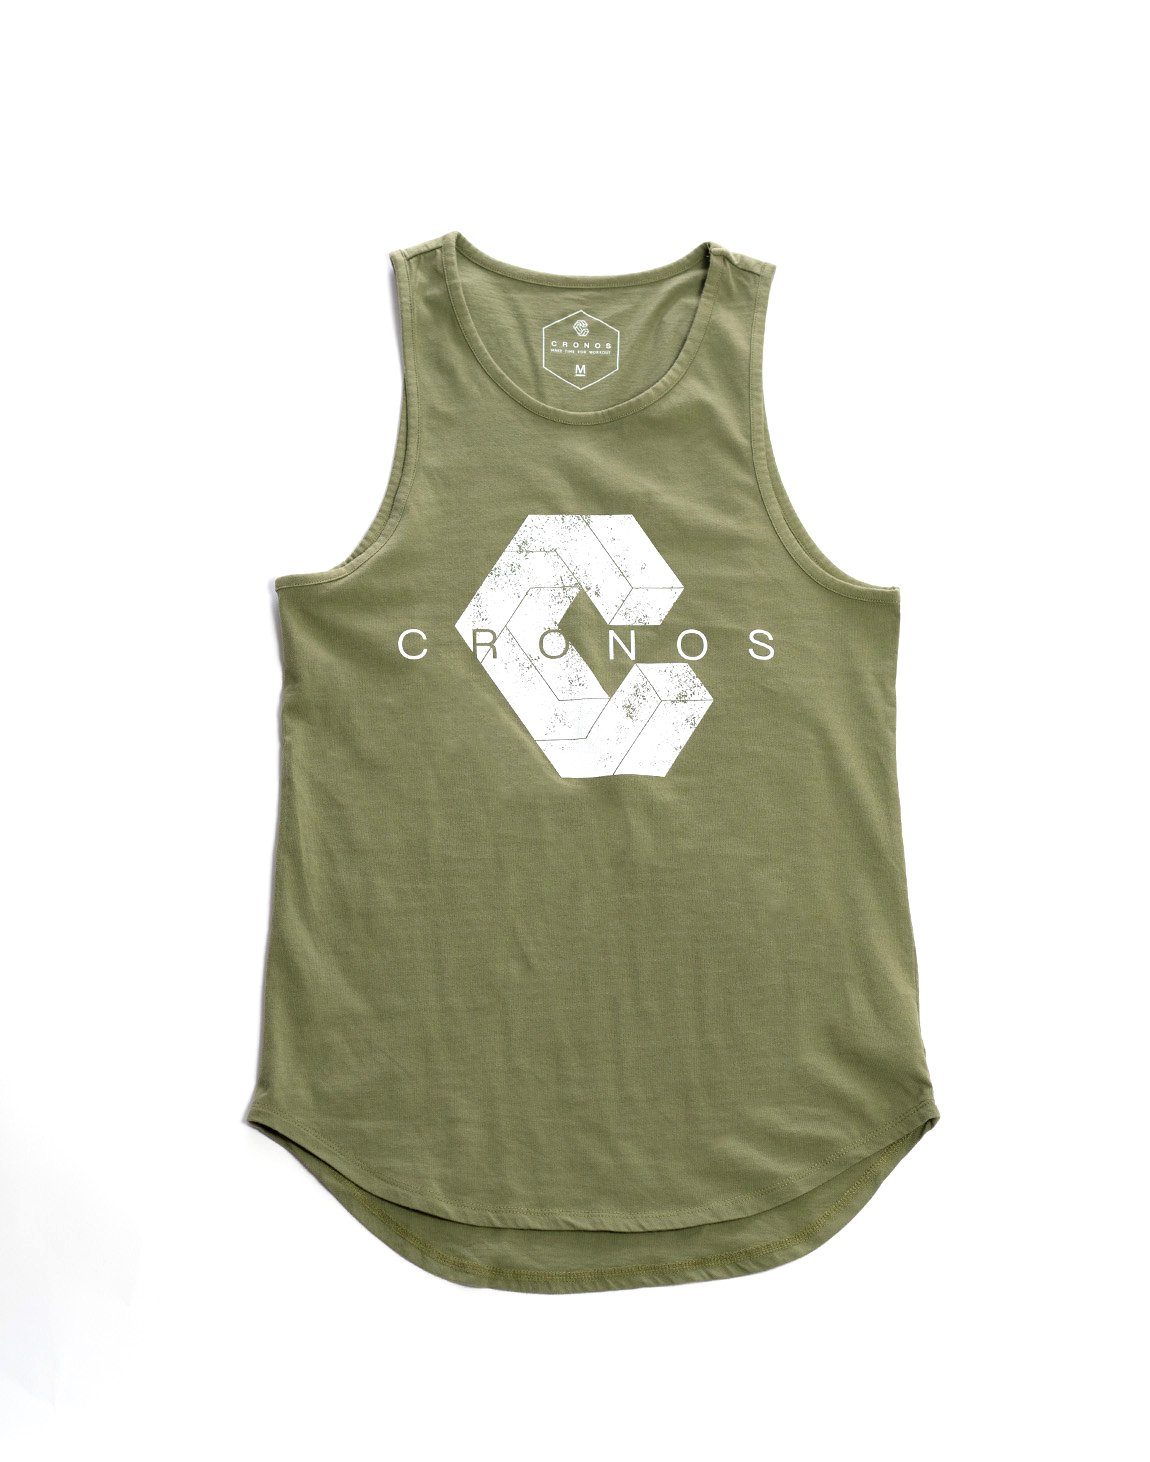 <img class='new_mark_img1' src='https://img.shop-pro.jp/img/new/icons1.gif' style='border:none;display:inline;margin:0px;padding:0px;width:auto;' />CRONOS NEW LOGO TANKTOP KHAKI